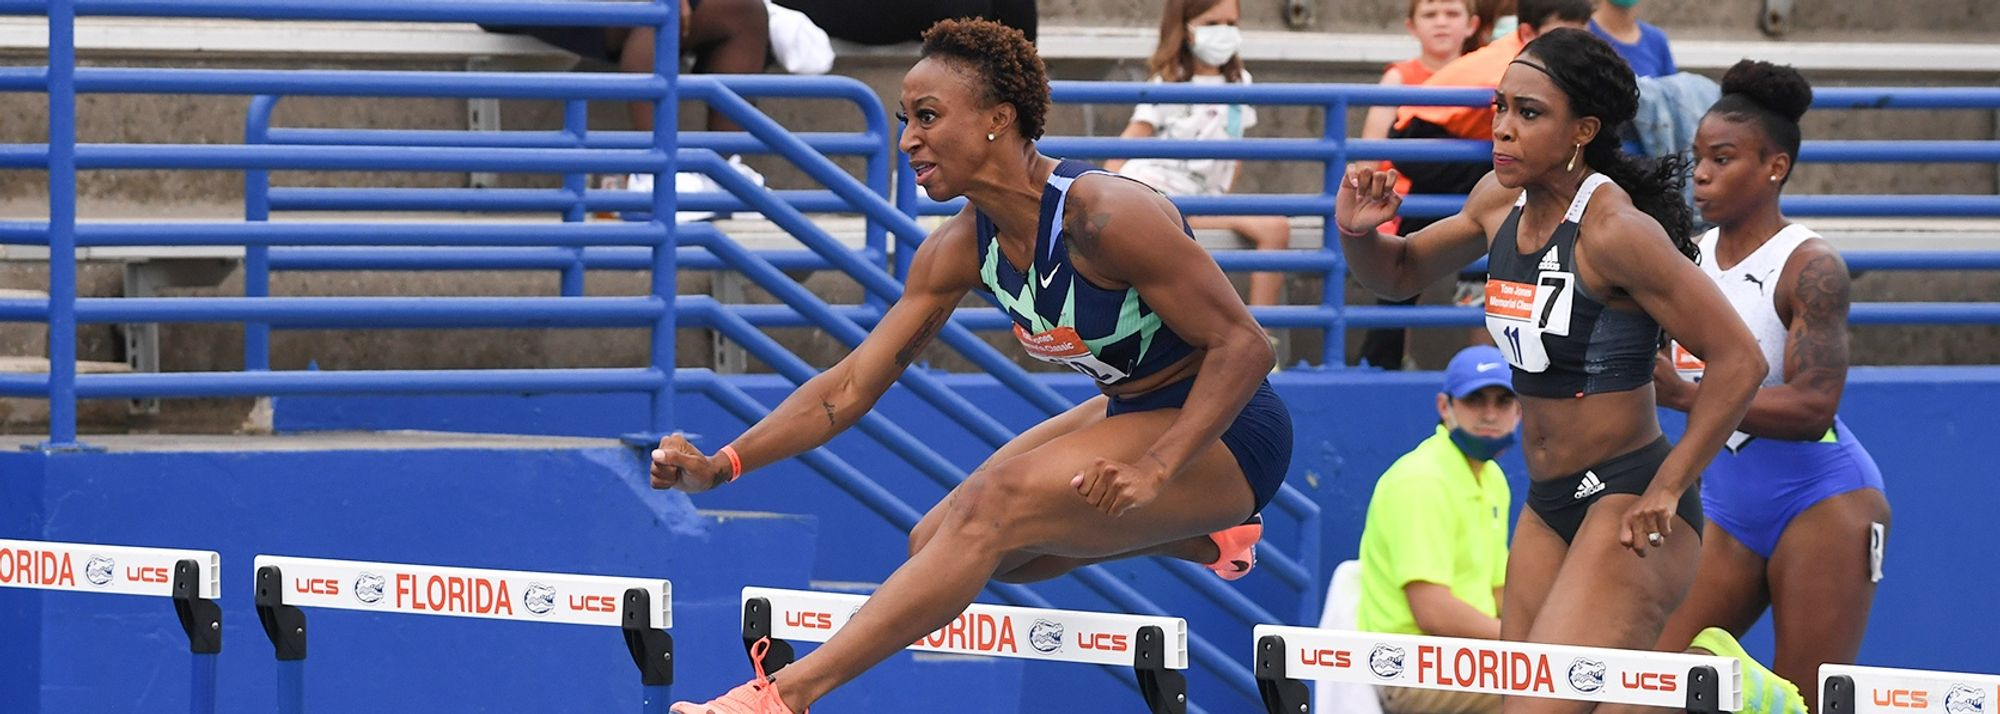 Continuing her comeback in style, Jasmine Camacho-Quinn stormed to a 100m hurdles win in 12.32 (1.7m/s) to move to equal seventh on the world all-time list at the Tom Jones Memorial Invitational in Gainesville, Florida, on Saturday (17).